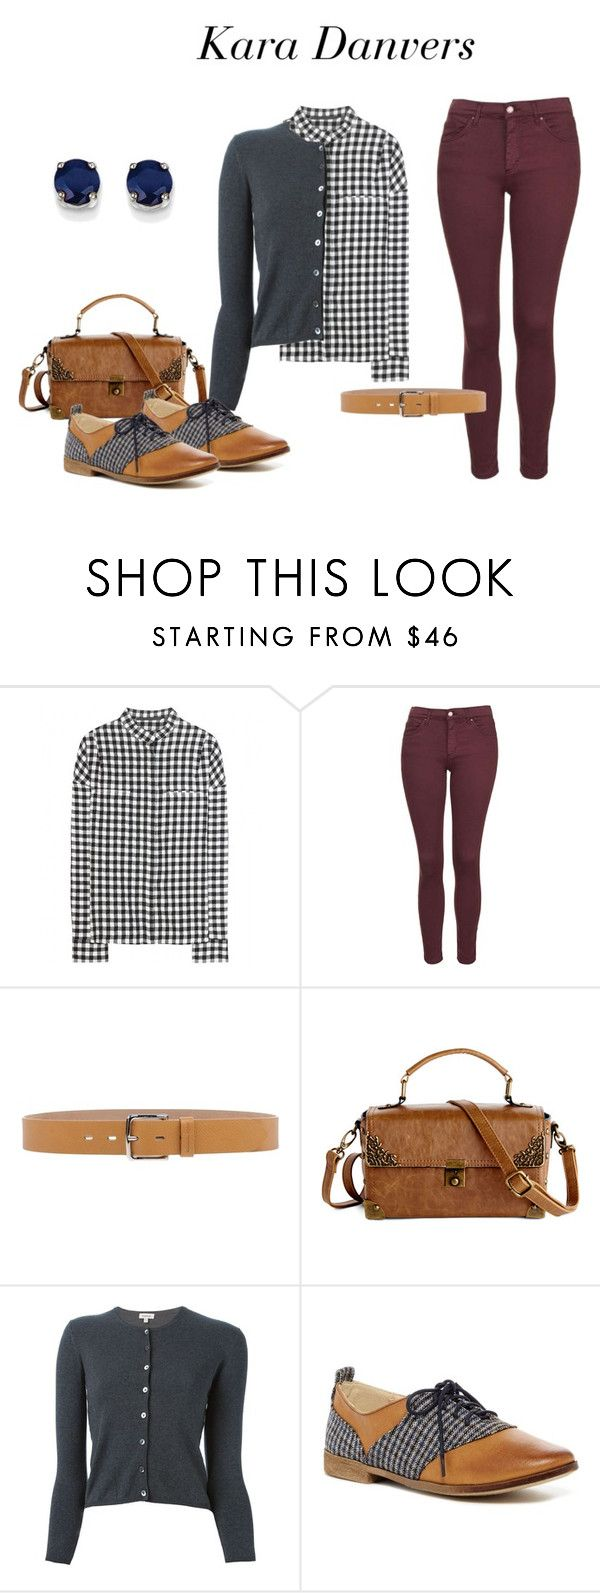 U0026quot;Kara Danvers (Supergirl) Inspired Outfitu0026quot; By Vintageuniquefashion4u Liked On Polyvore Featuring ...